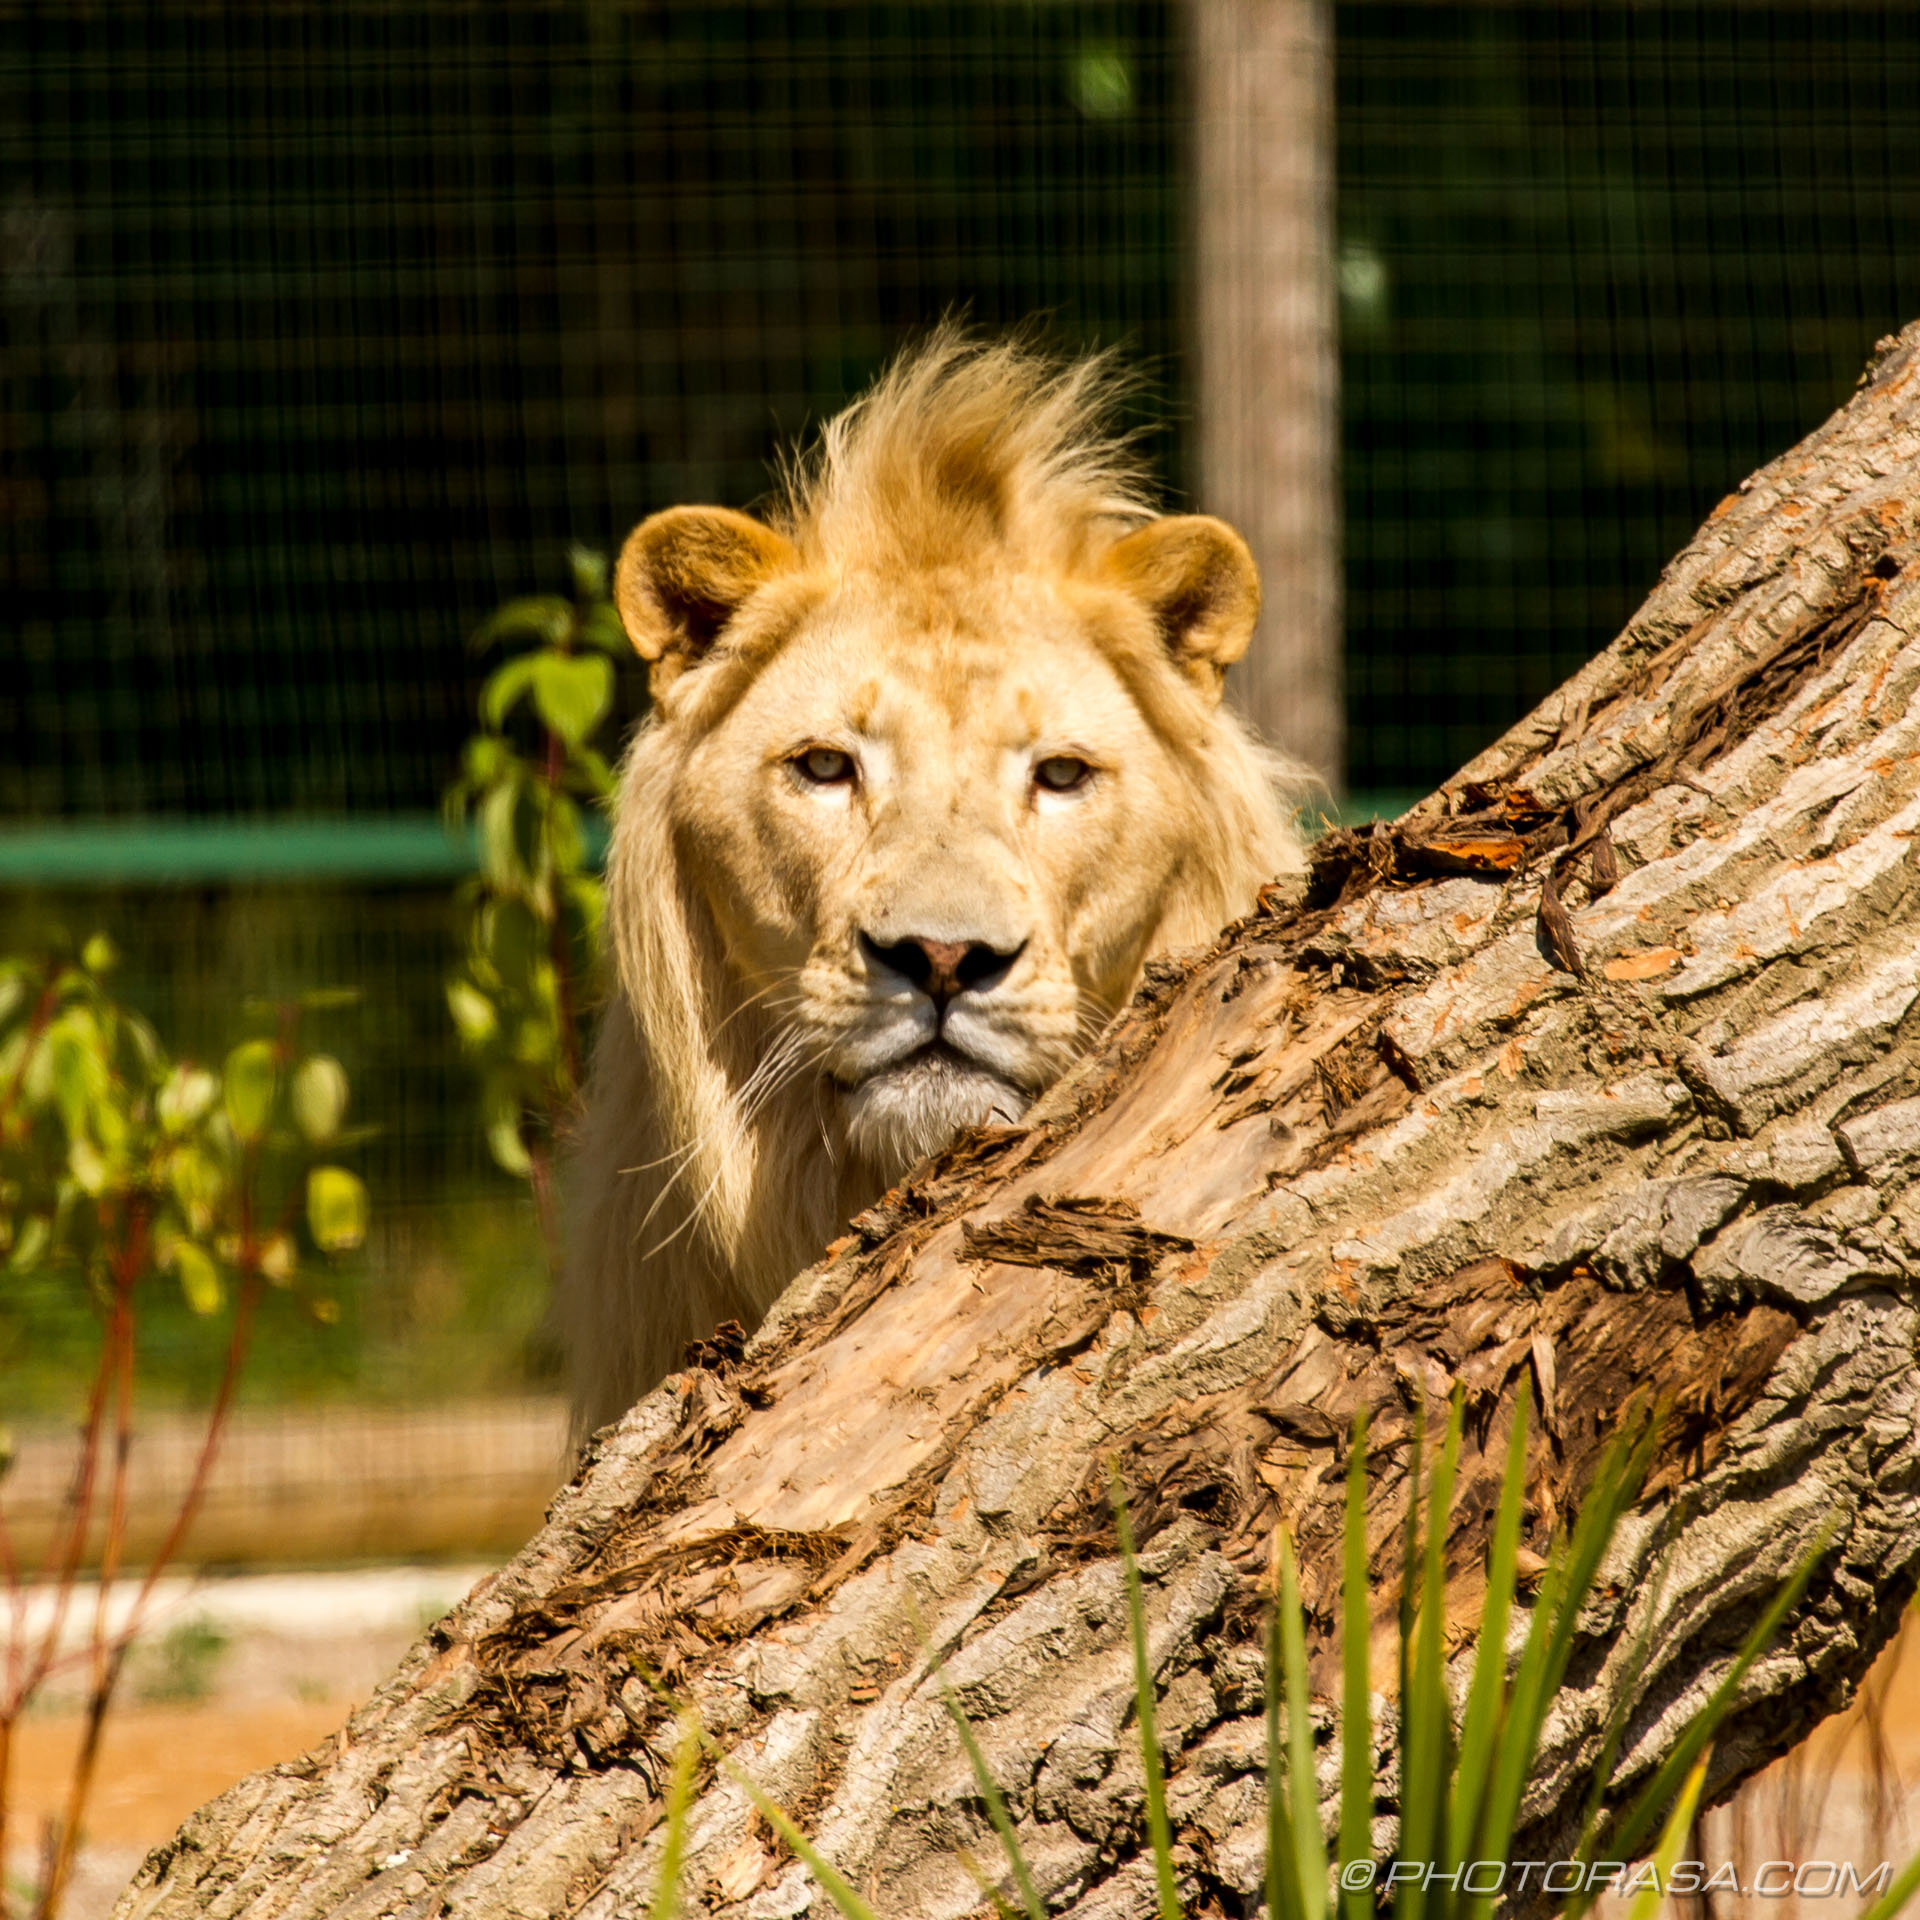 http://photorasa.com/white-lion/white-lion-looking-over/